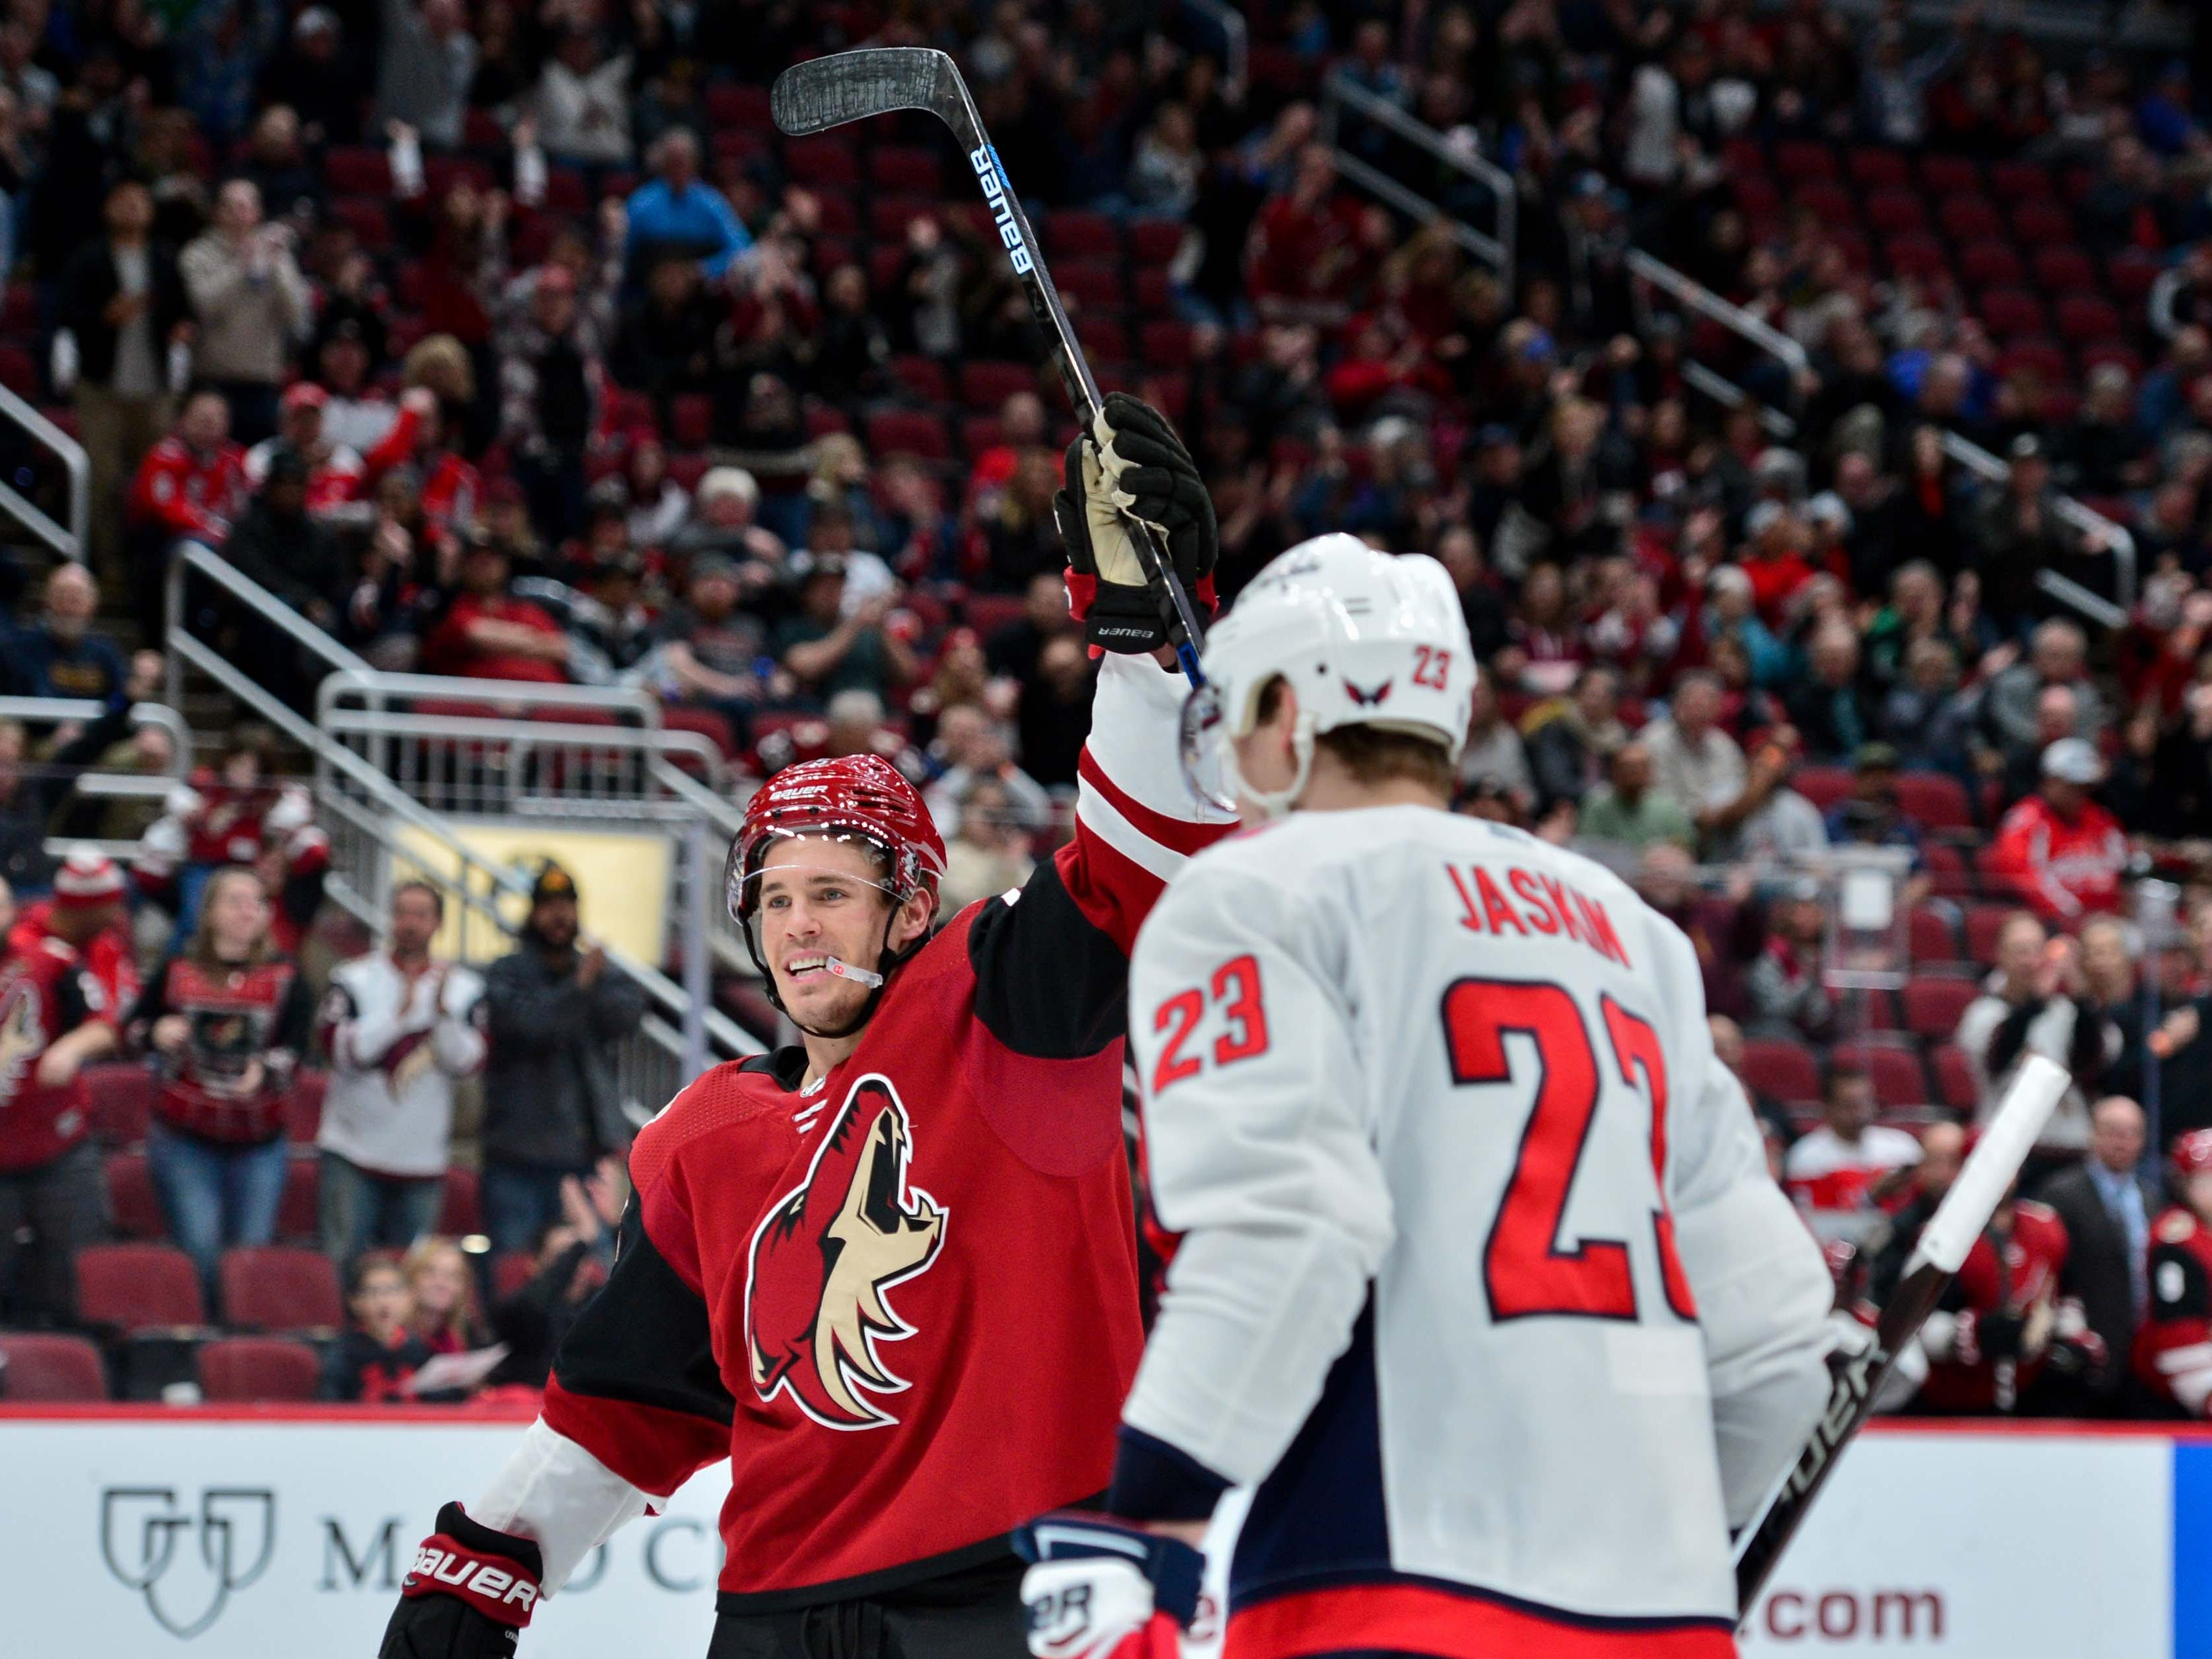 Dec 6, 2018; Glendale, AZ, USA; Arizona Coyotes center Nick Cousins (25) celebrates a goal by Arizona Coyotes left wing Lawson Crouse (not pictured) during the second period against the Washington Capitals at Gila River Arena. Mandatory Credit: Matt Kartozian-USA TODAY Sports